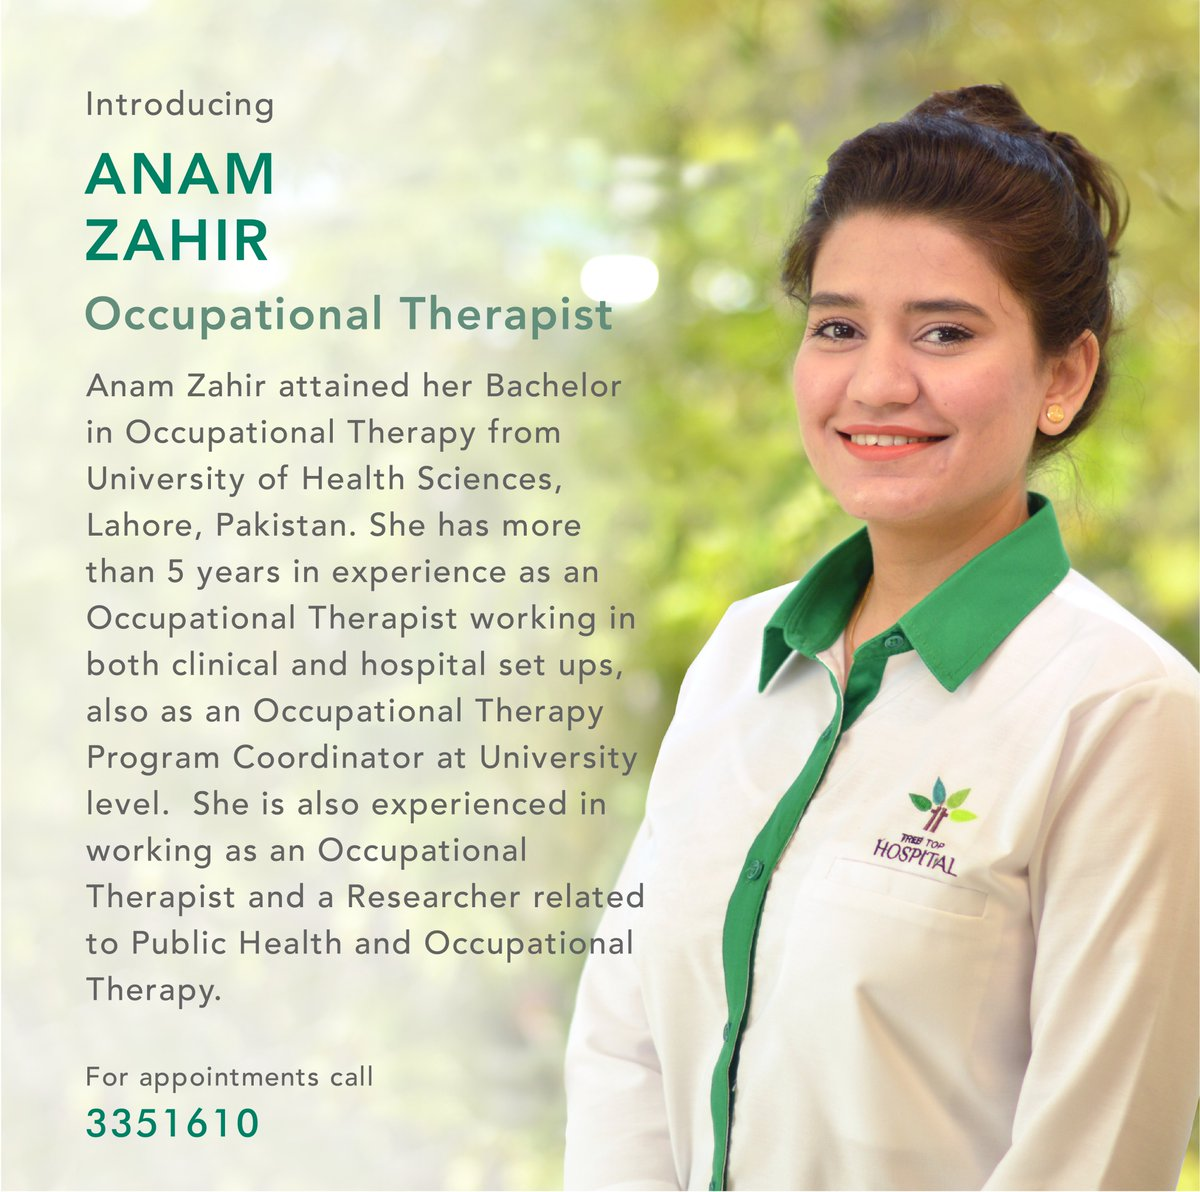 Anam Zahir, Occupational Therapist (އަނަމް ޒާހިރު، އޮކިއުޕޭޝަނަލް ތެރަޕިސްޓް)  Learn more:http://bit.ly/2Xpbtg3   For more information call 3351610.  #treetophospital #tth #treetop #maldives #health #healthcare #excellenceinhealthcare #rehabilitation #occuptationaltherapypic.twitter.com/5jJmFoTQFv